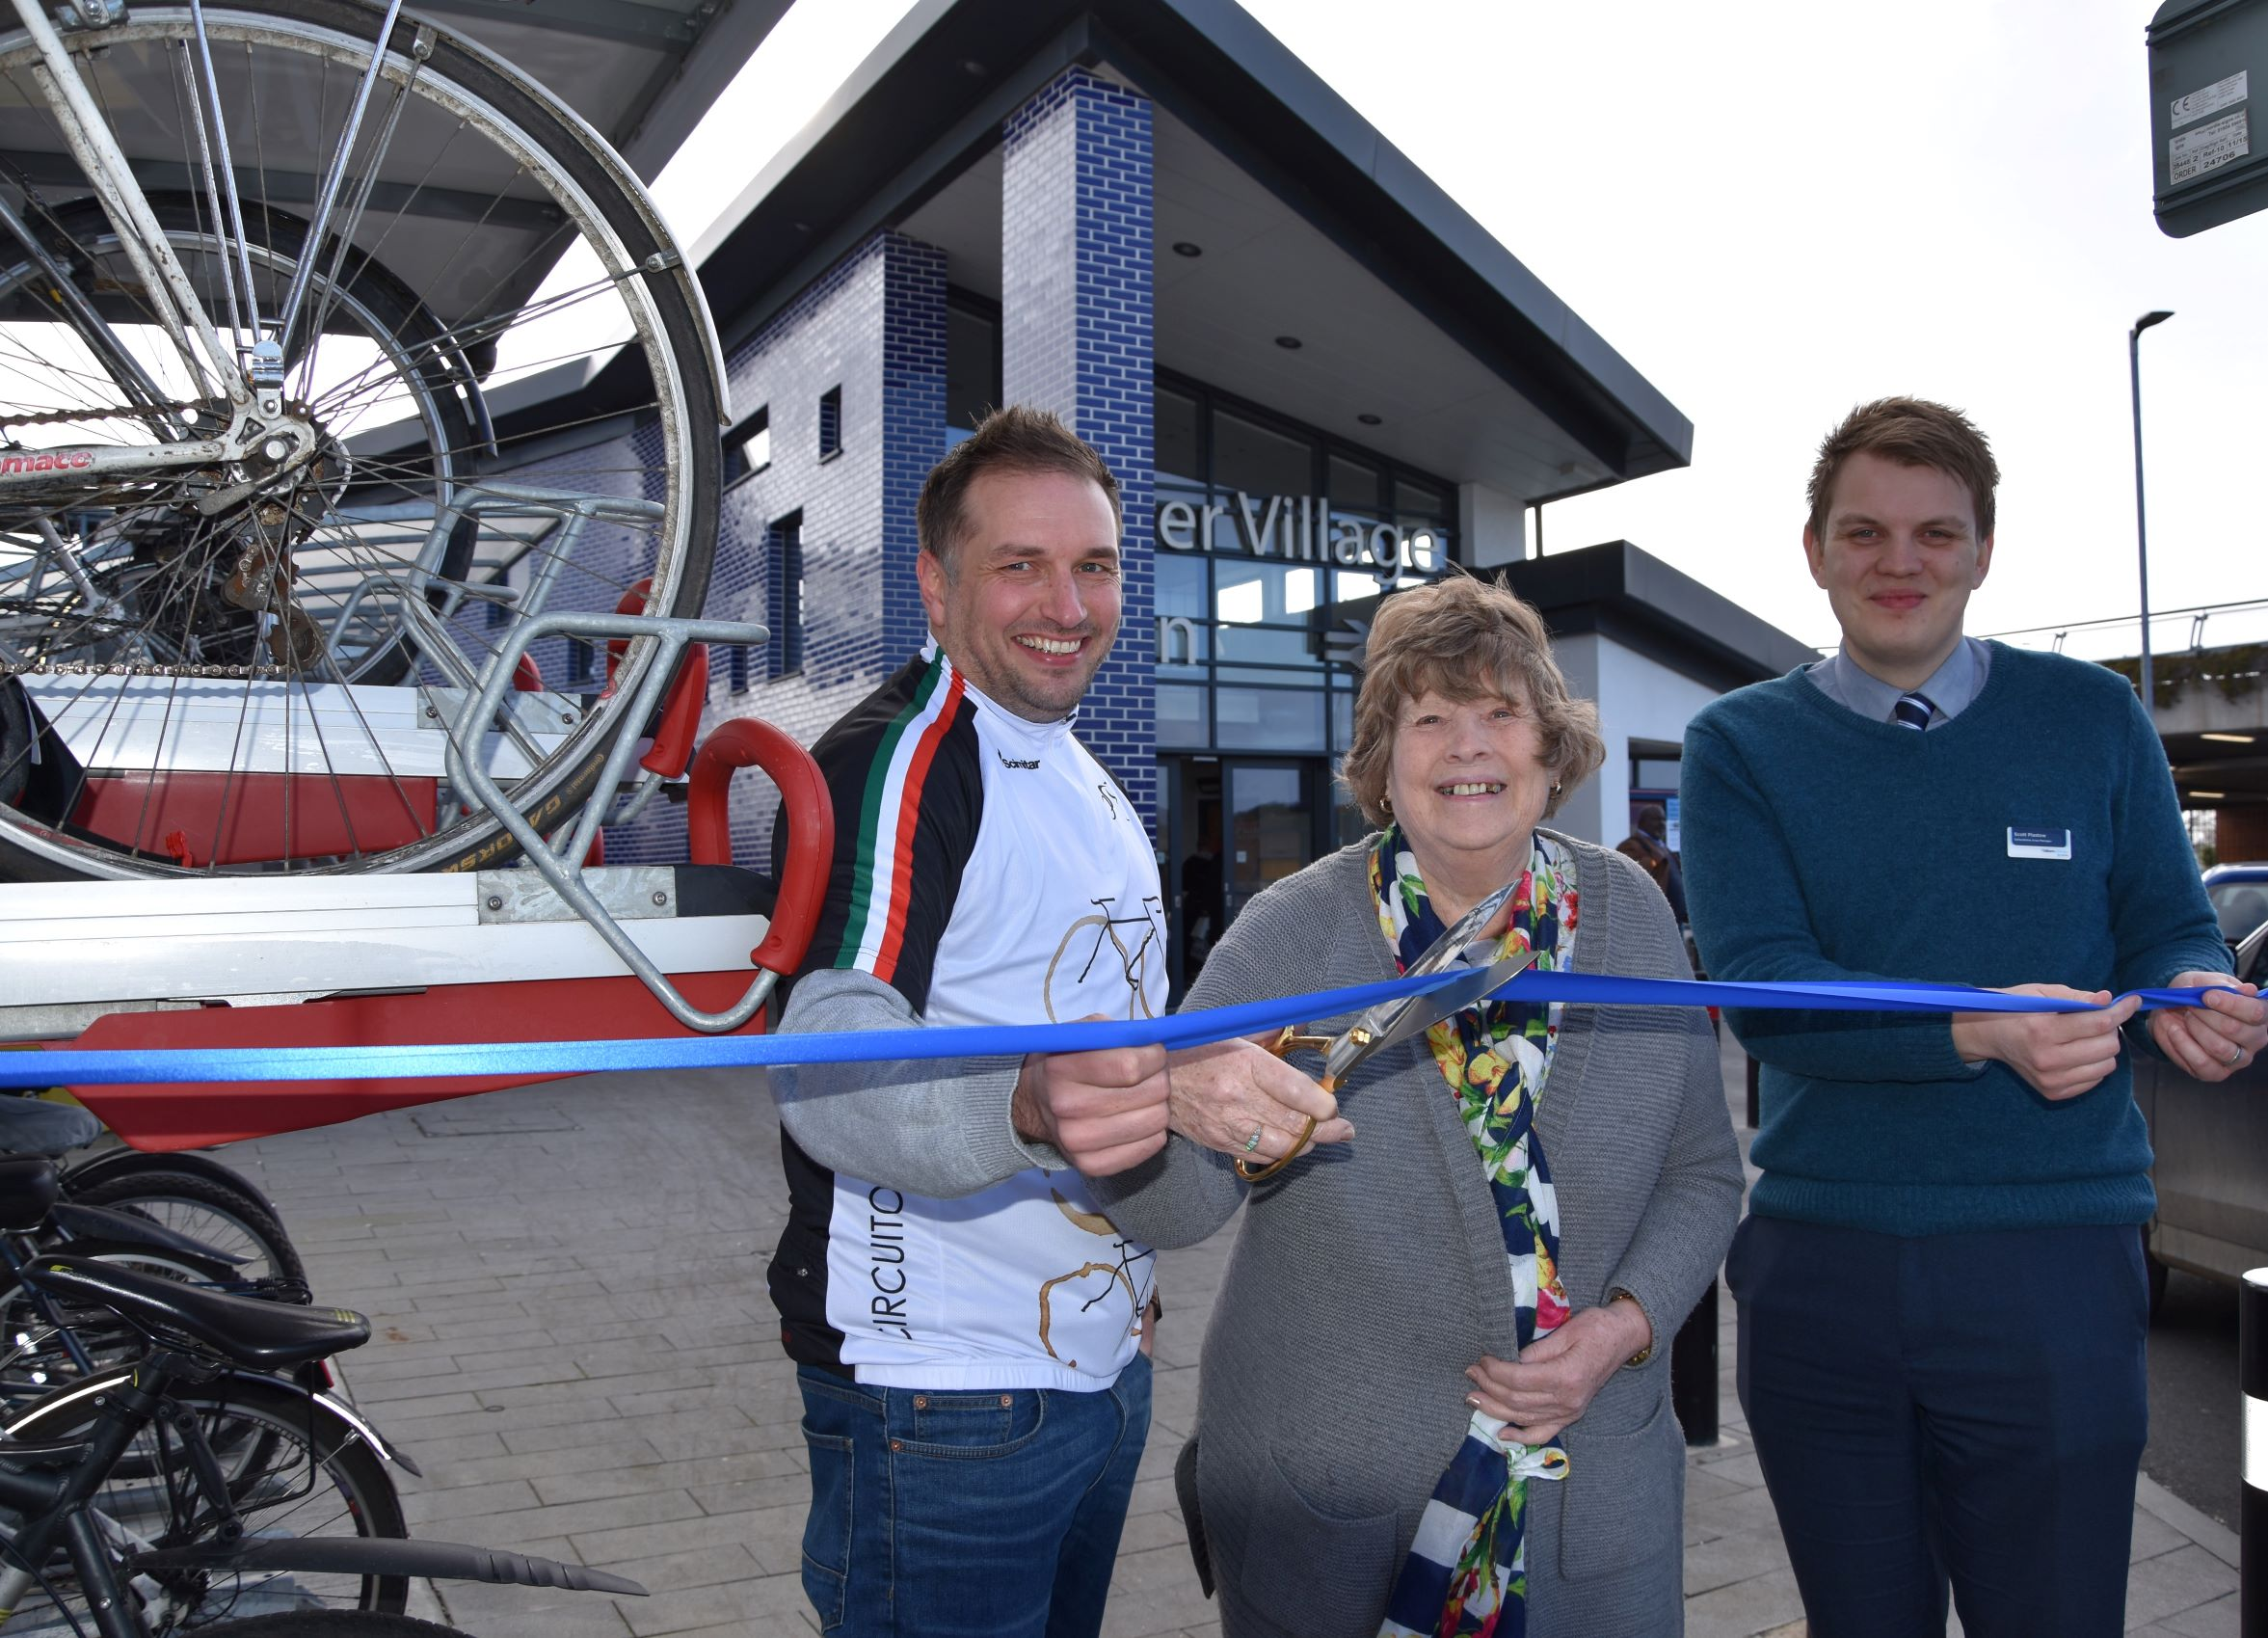 Chiltern Railways unveil new bike racks  at Bicester Stations